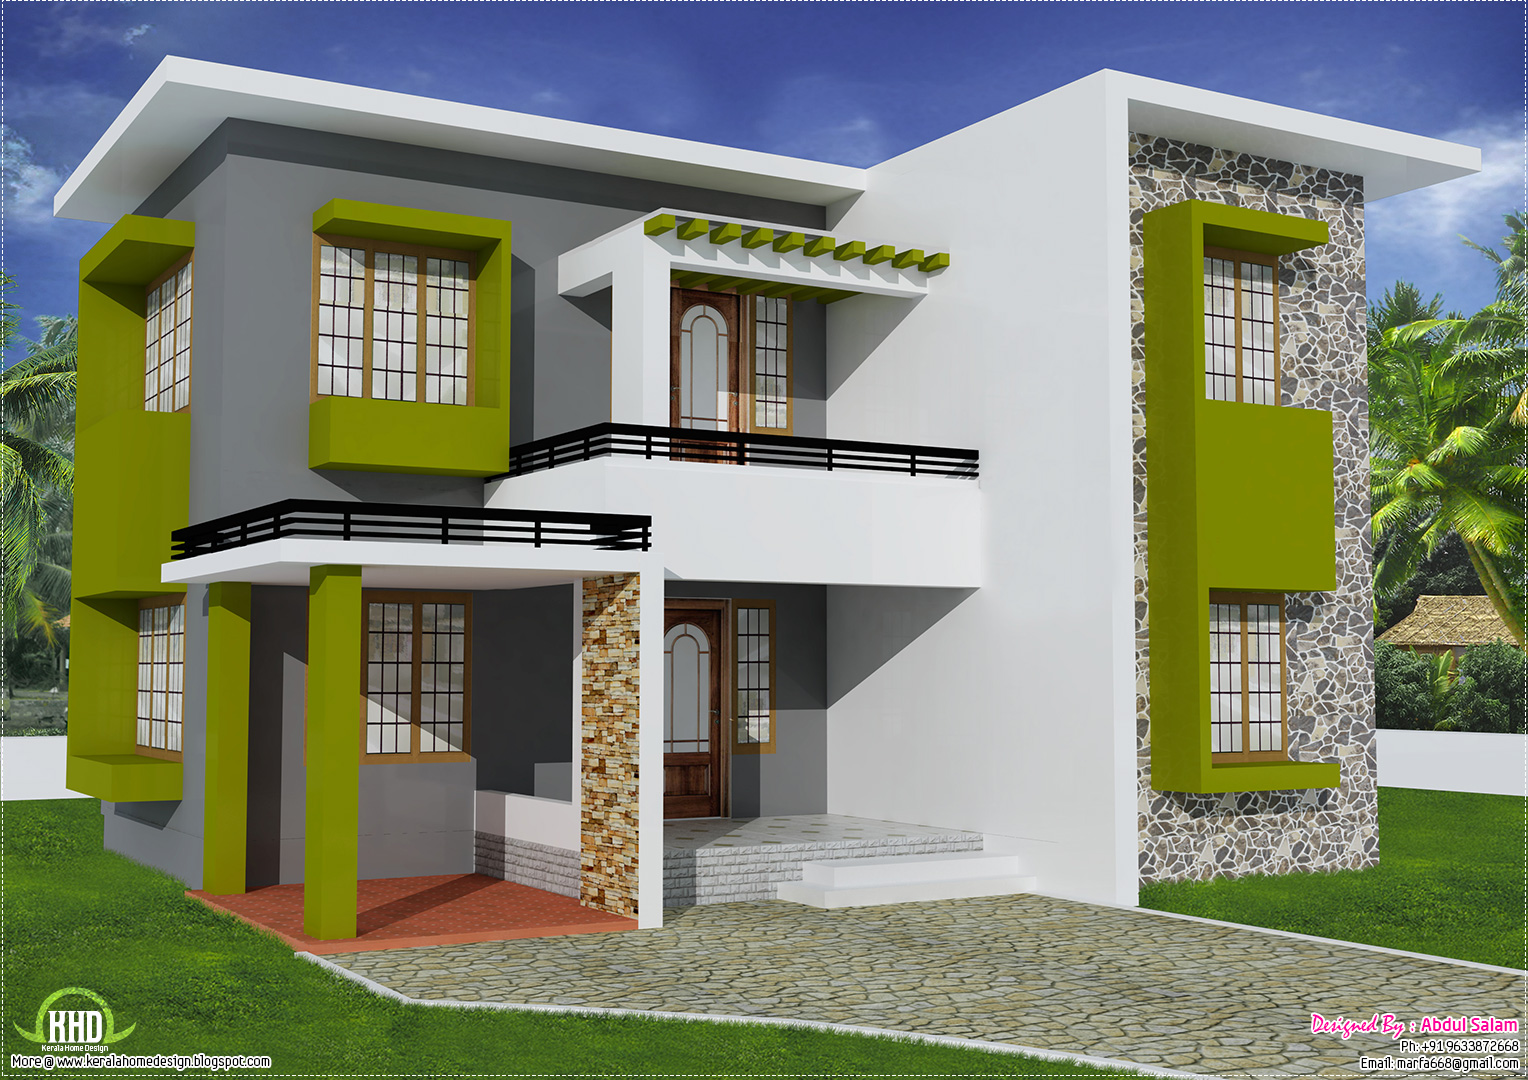 1700 flat roof home design kerala home design for 1700 feet to meters